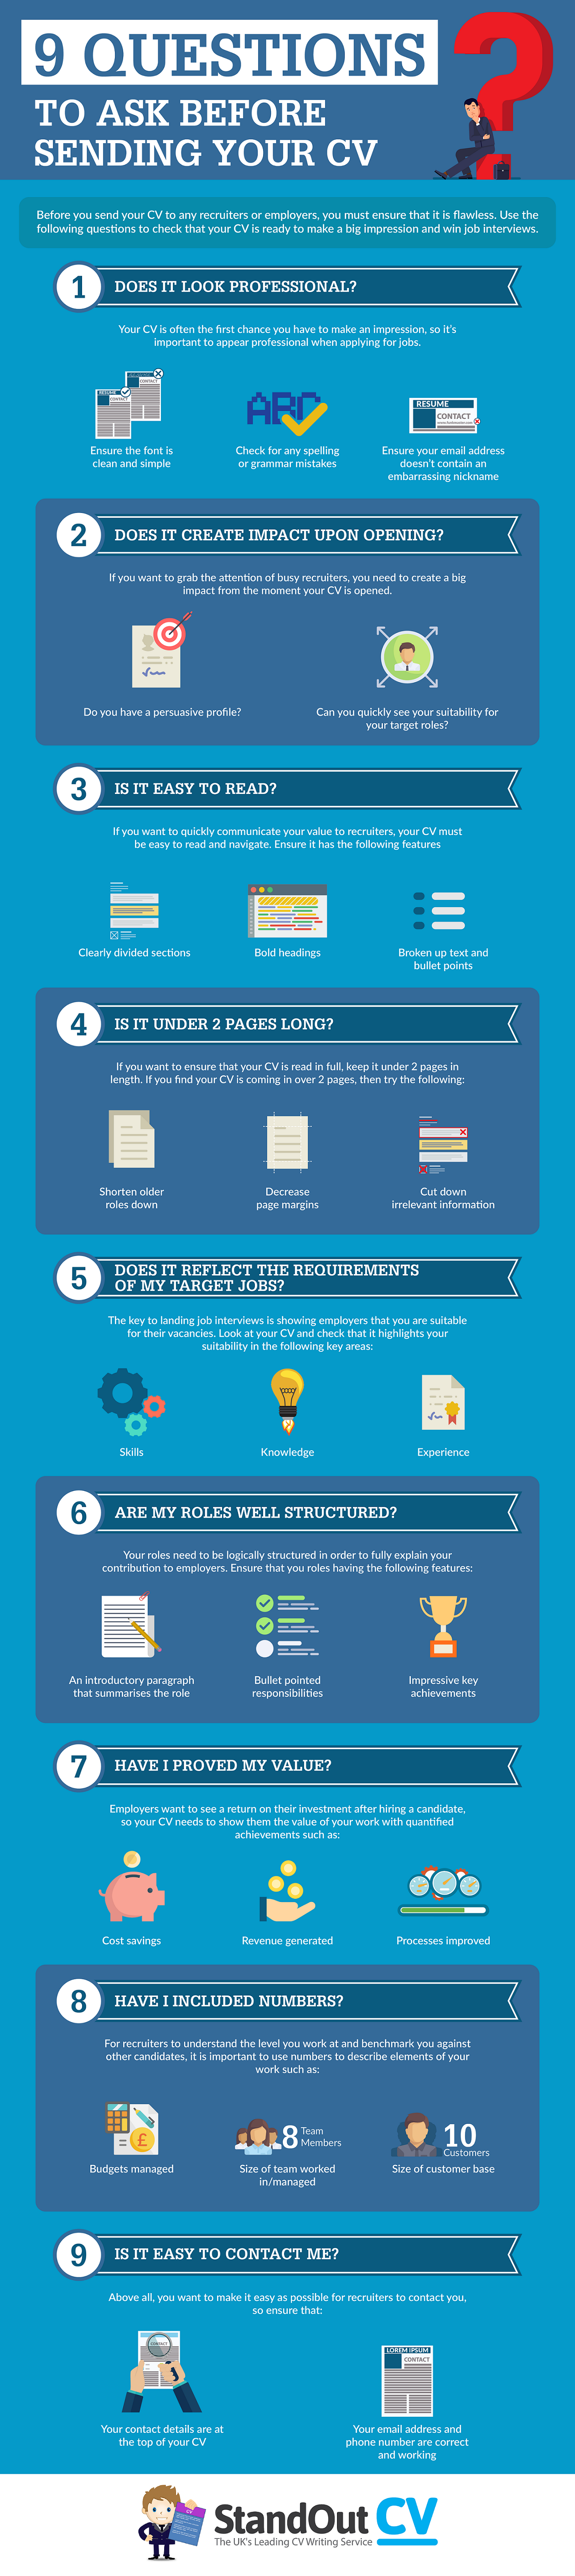 9 questions to ask before sending your cv infographic